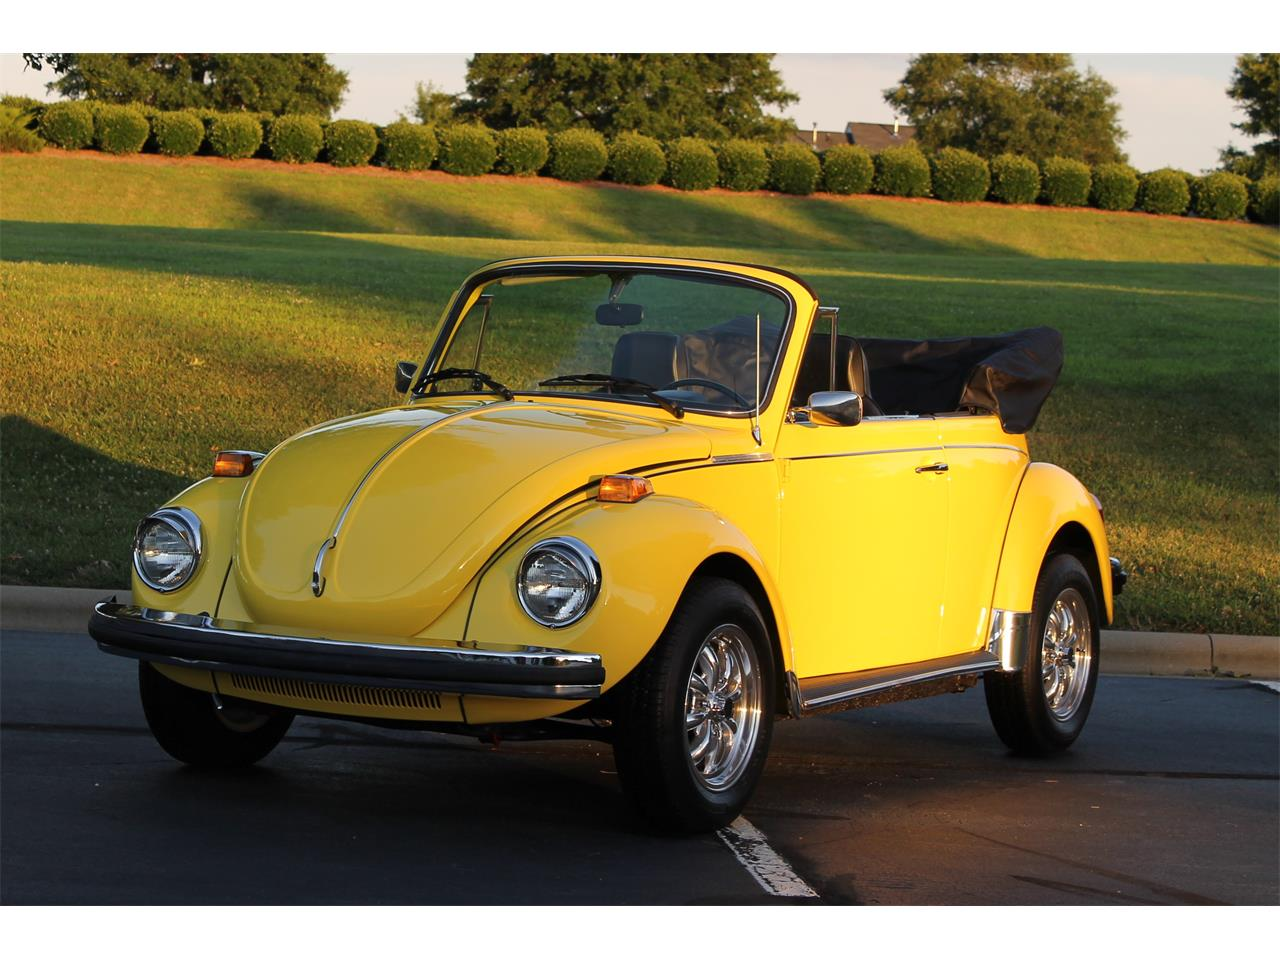 Large Picture of 1975 Volkswagen Beetle located in Fort Mill South Carolina - $15,900.00 - M5P1